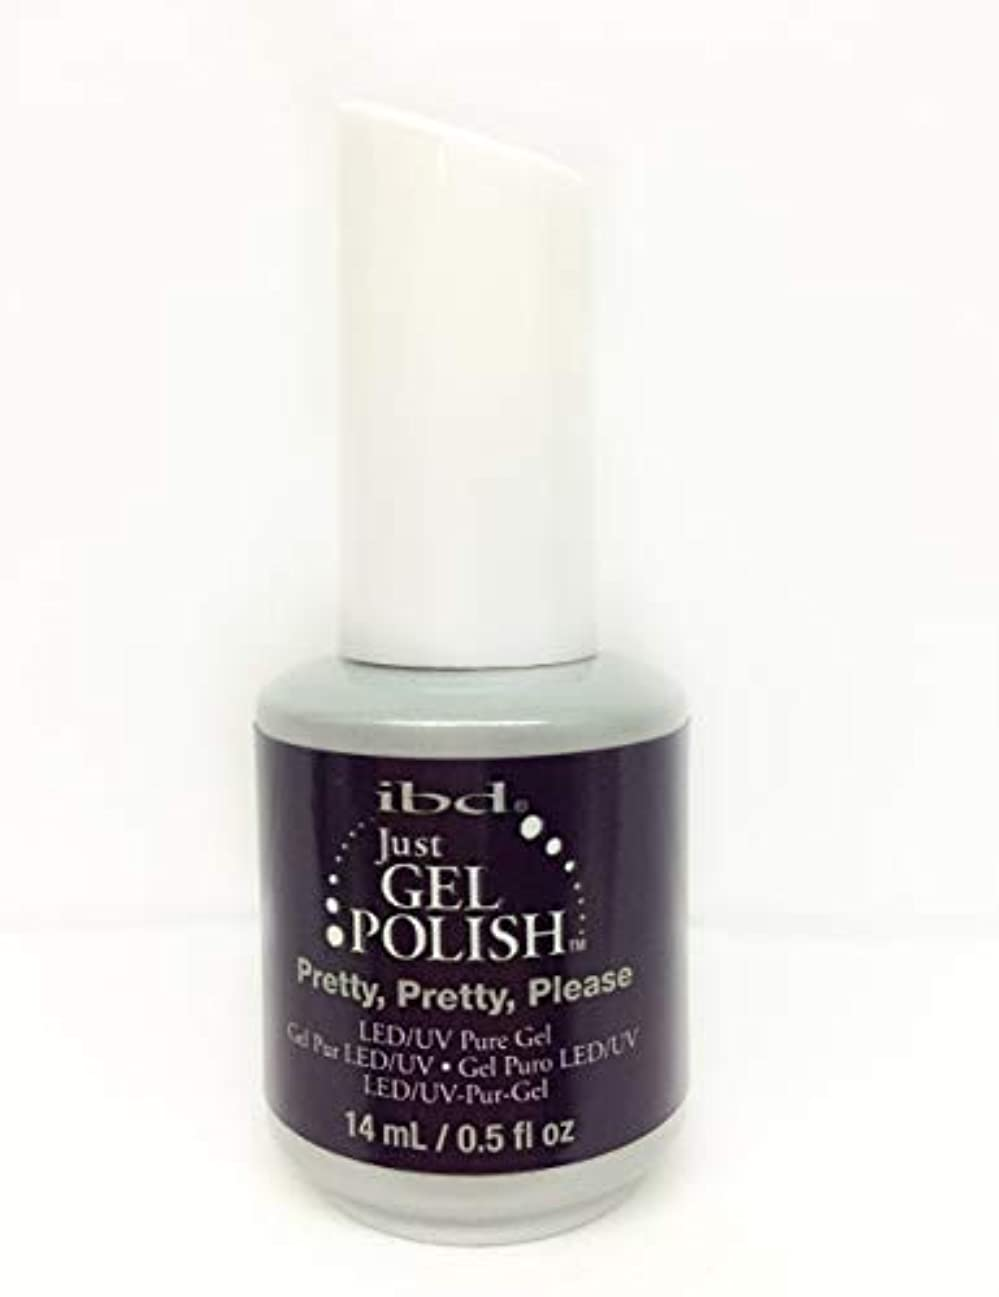 スマッシュ放棄団結ibd Just Gel Nail Polish - Pretty, Pretty, Please - 14ml / 0.5oz